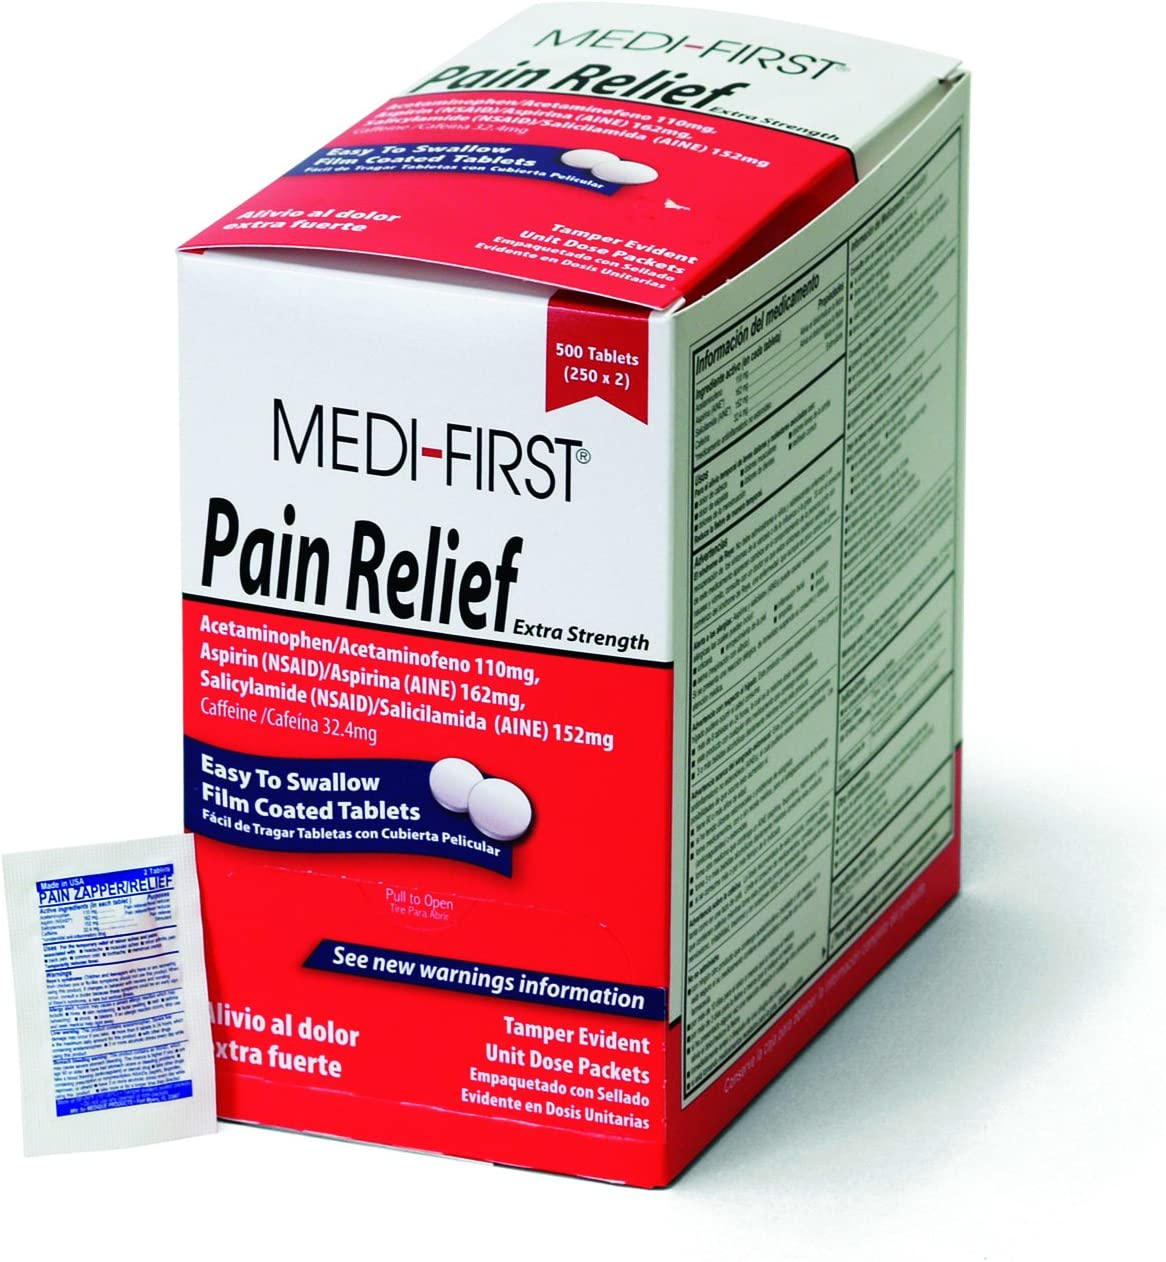 Medique 500 Per Box 81113 Medi-First Pain Relief Tablets